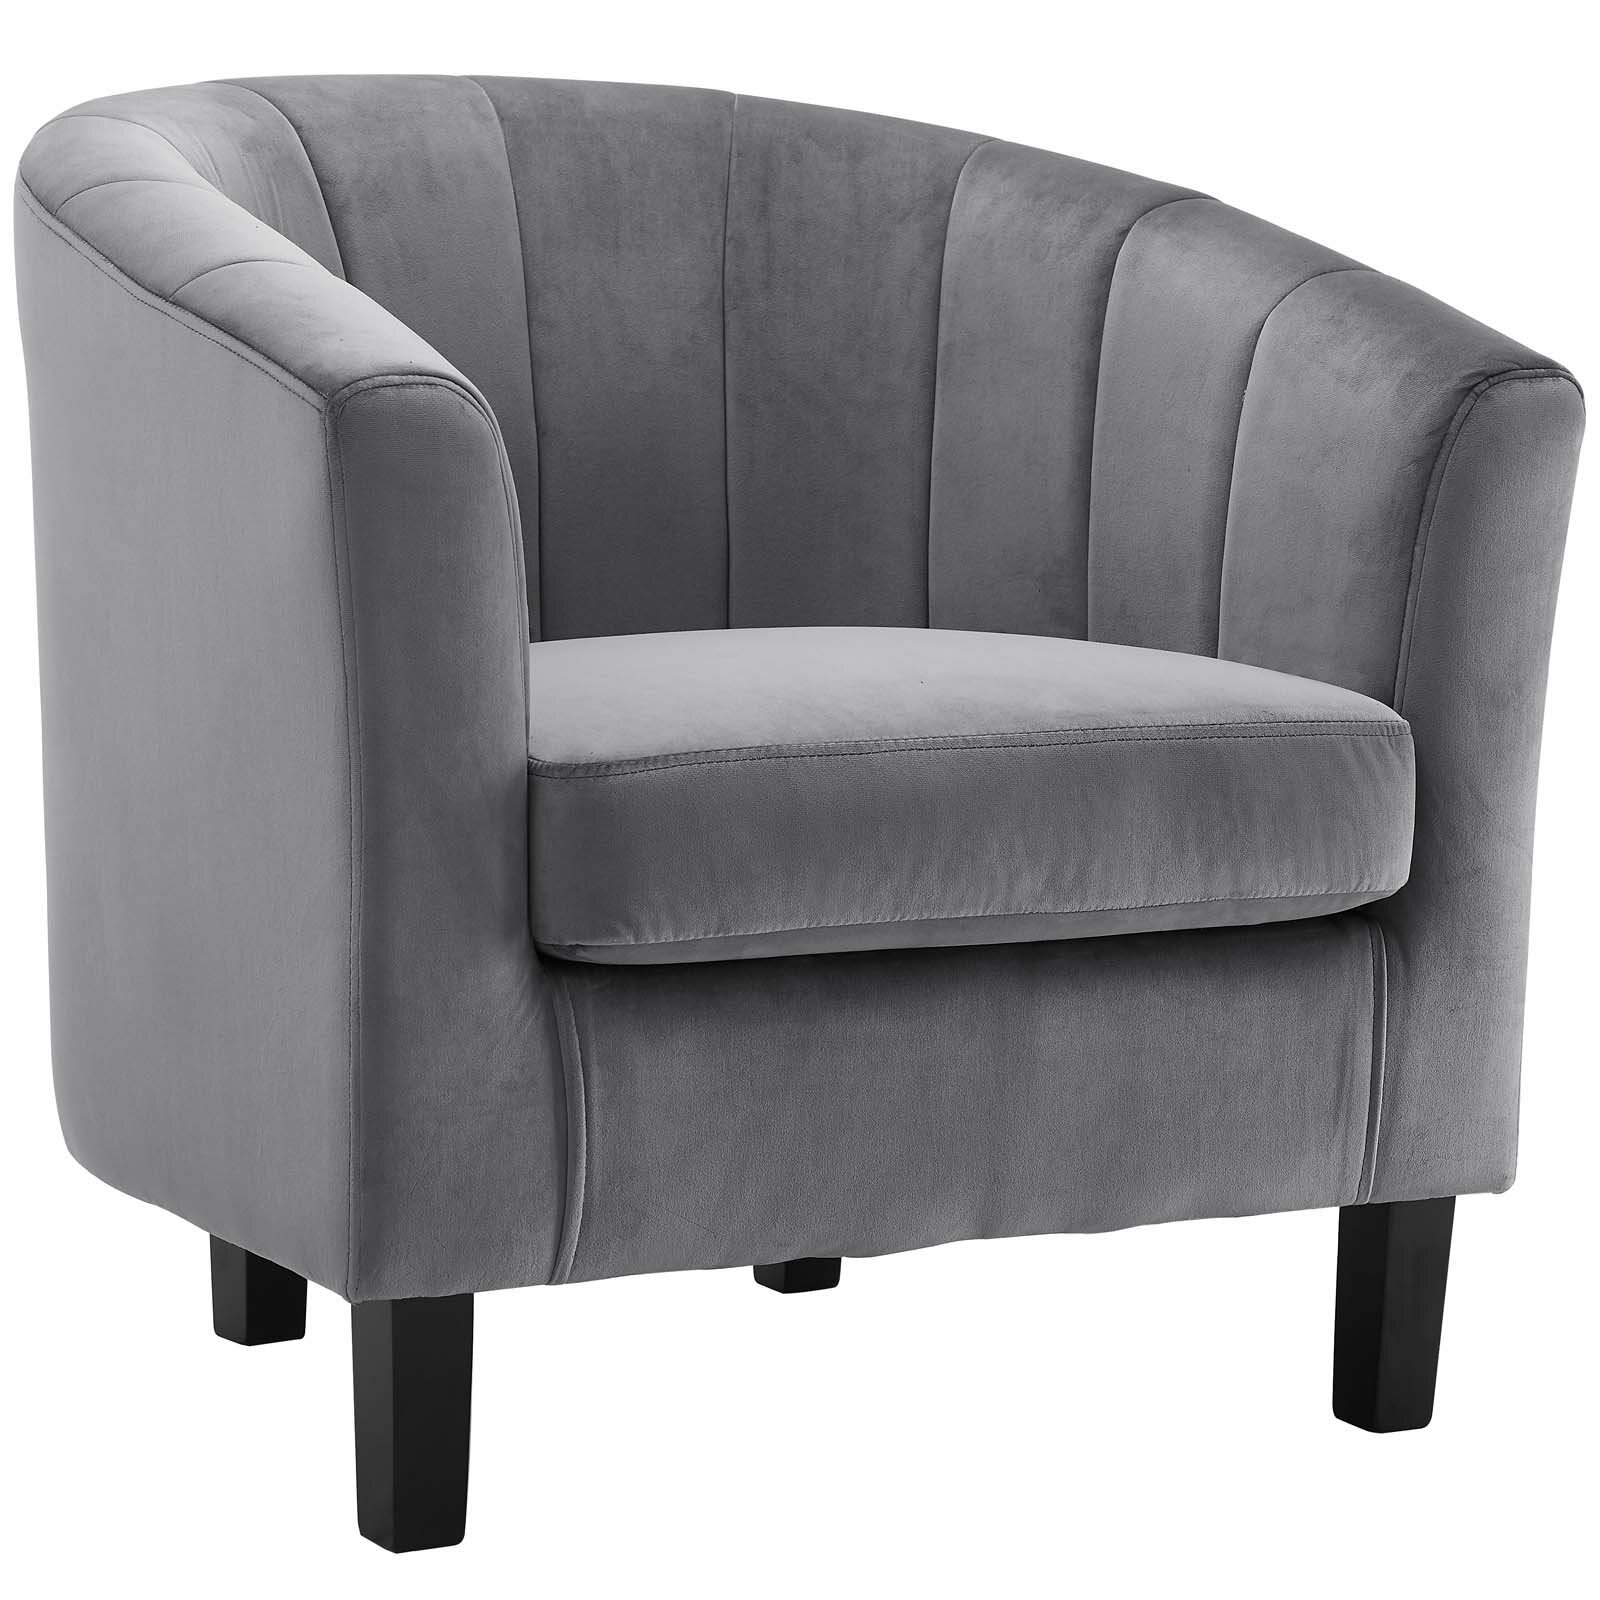 """Ziaa Channel 20"""" Armchair With Regard To Ziaa Armchairs (Set Of 2) (View 9 of 15)"""